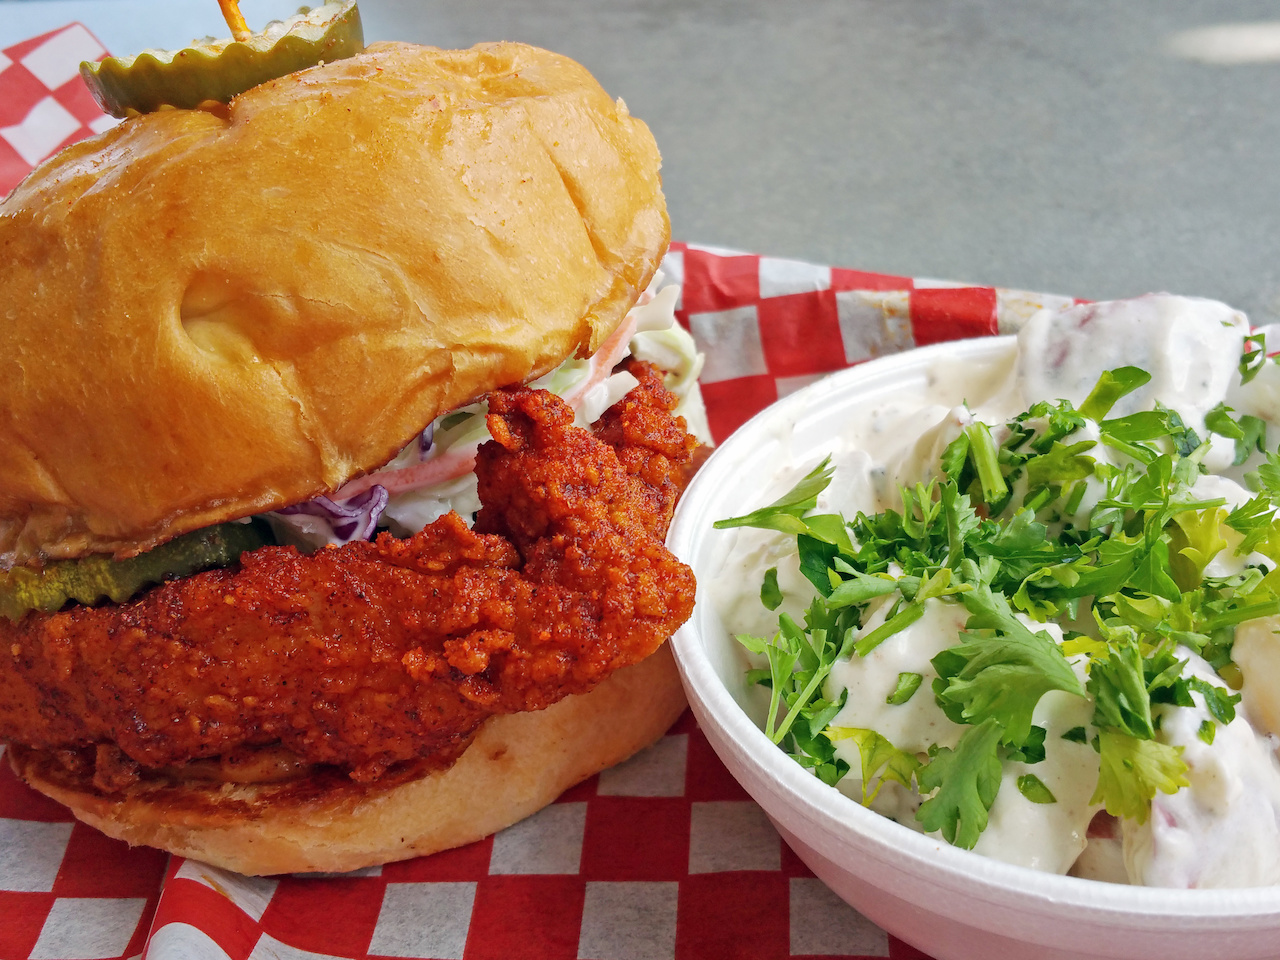 The Hattie B's hot chicken mouthwatering sandwich pairs perfectly with the house potato salad.